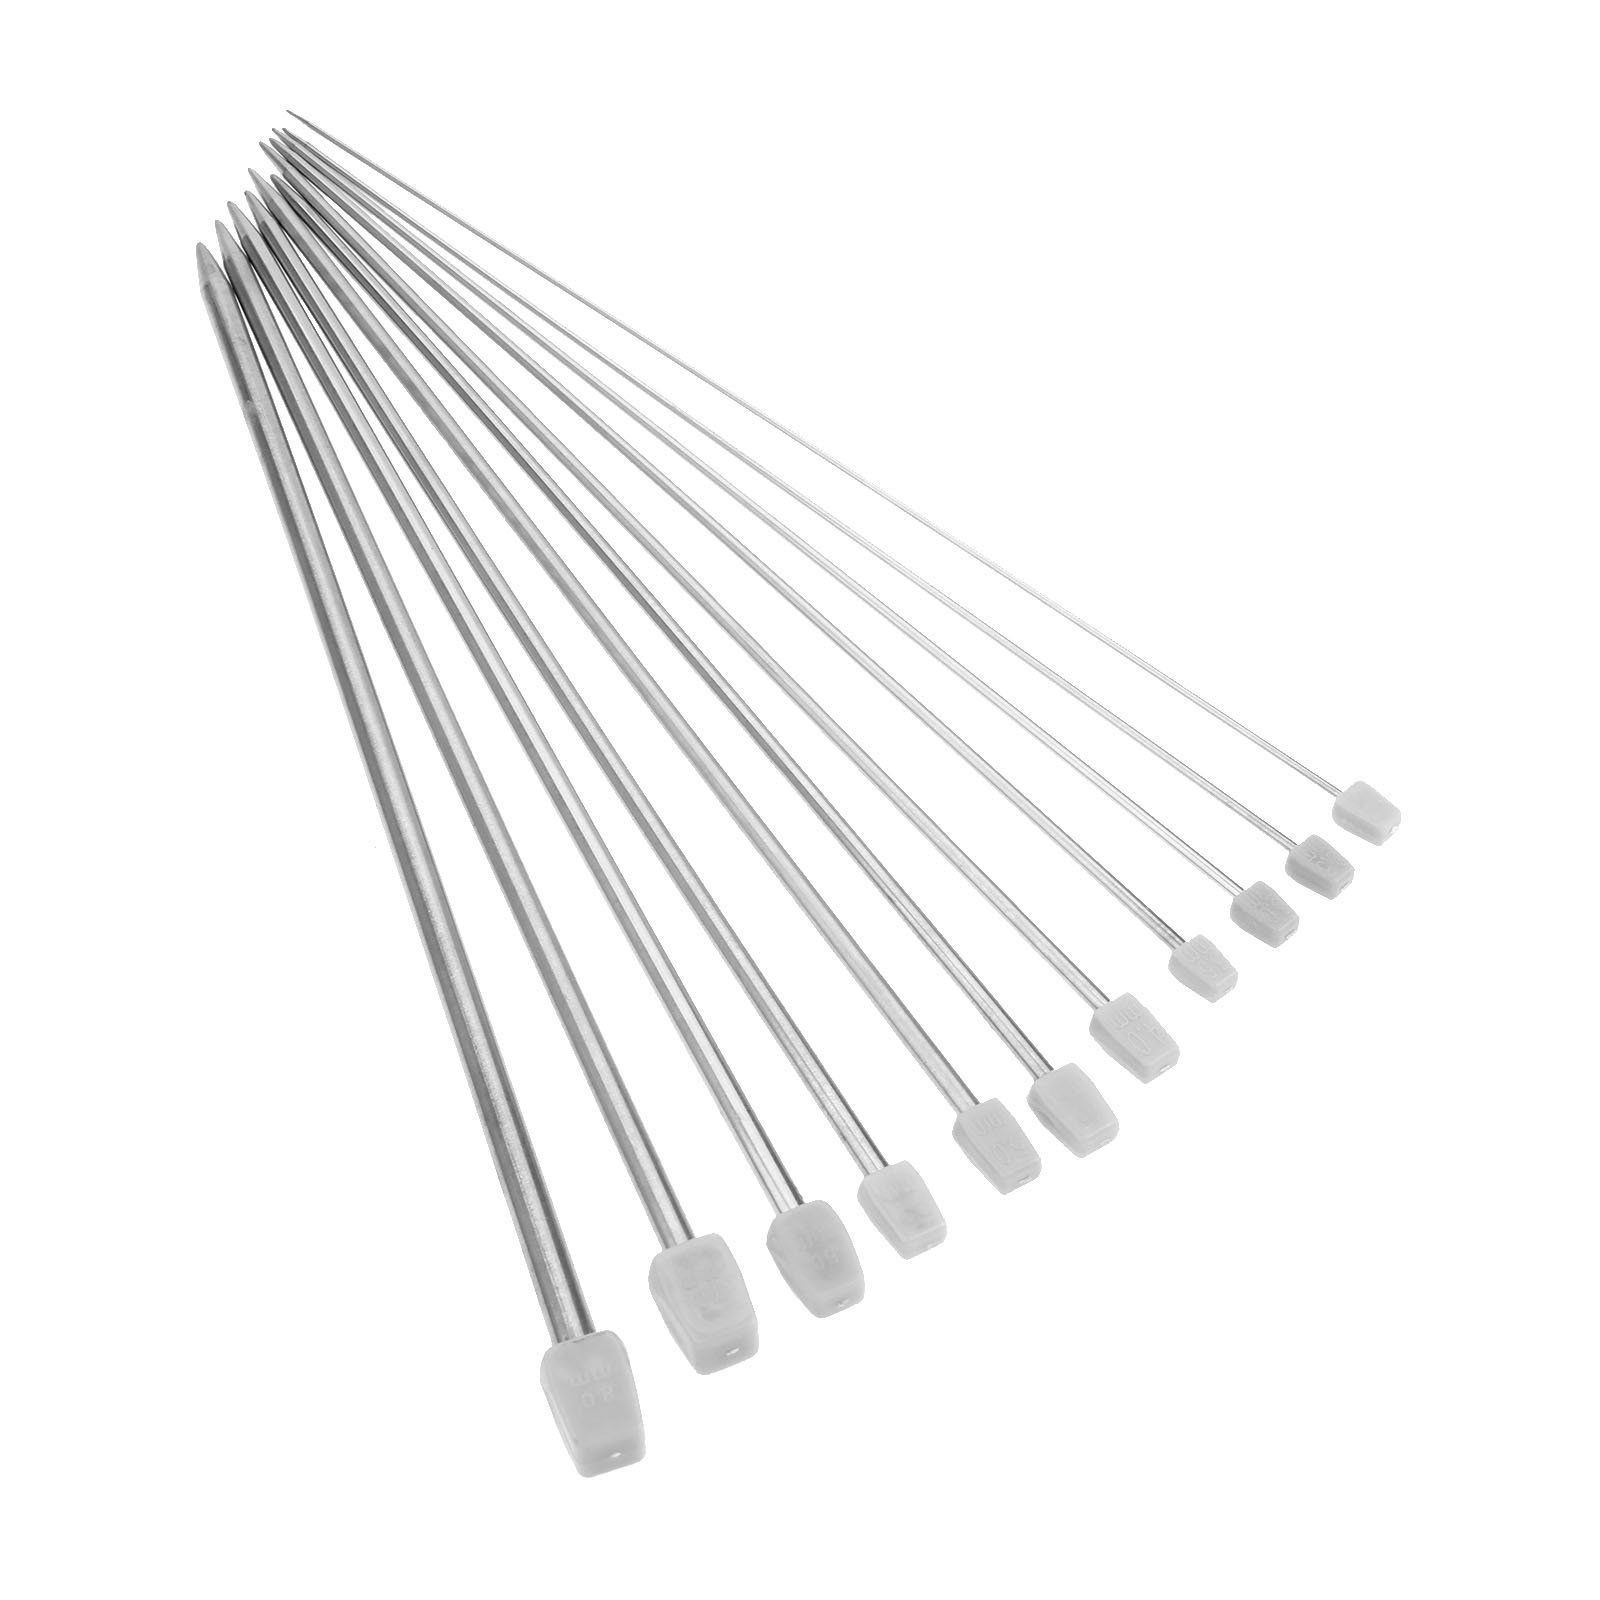 Silver /& Bonus 2 Needle Threaders for you! Steel Large-eye Blunt Sewing Needles,Yarn Tapestry darning Embroidery Knitting Needles,Assorted size of 9 Pcs